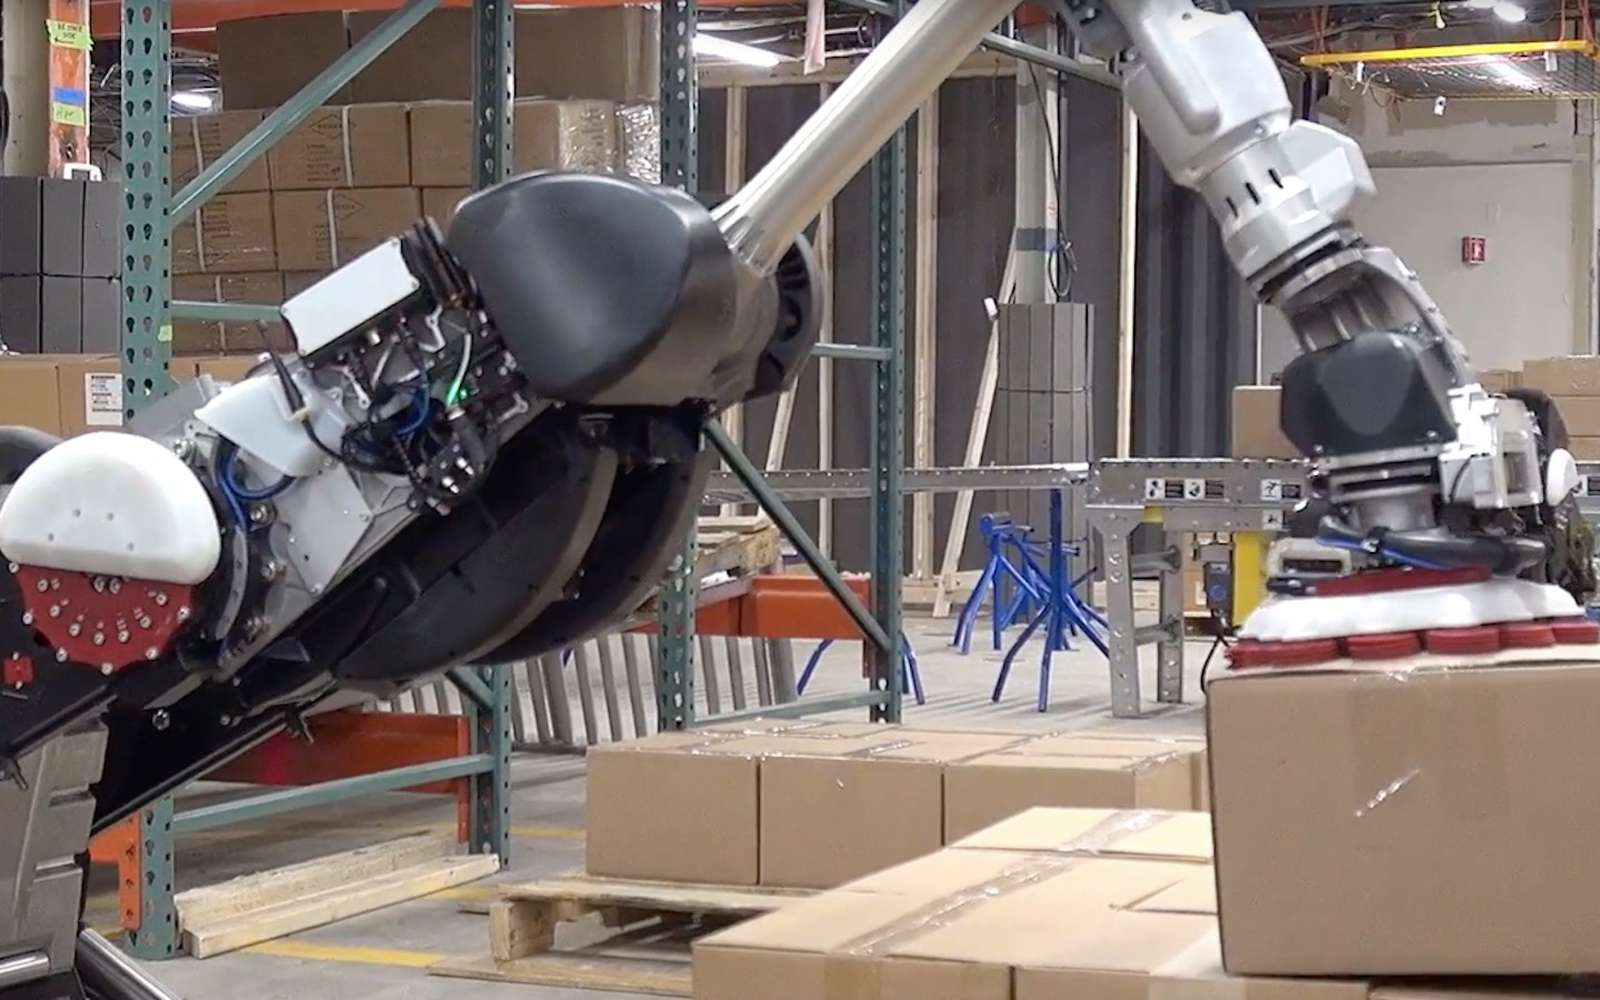 Handle ressemble au robot humanoïde Atlas de Boston Dynamics. © Boston Dynamics